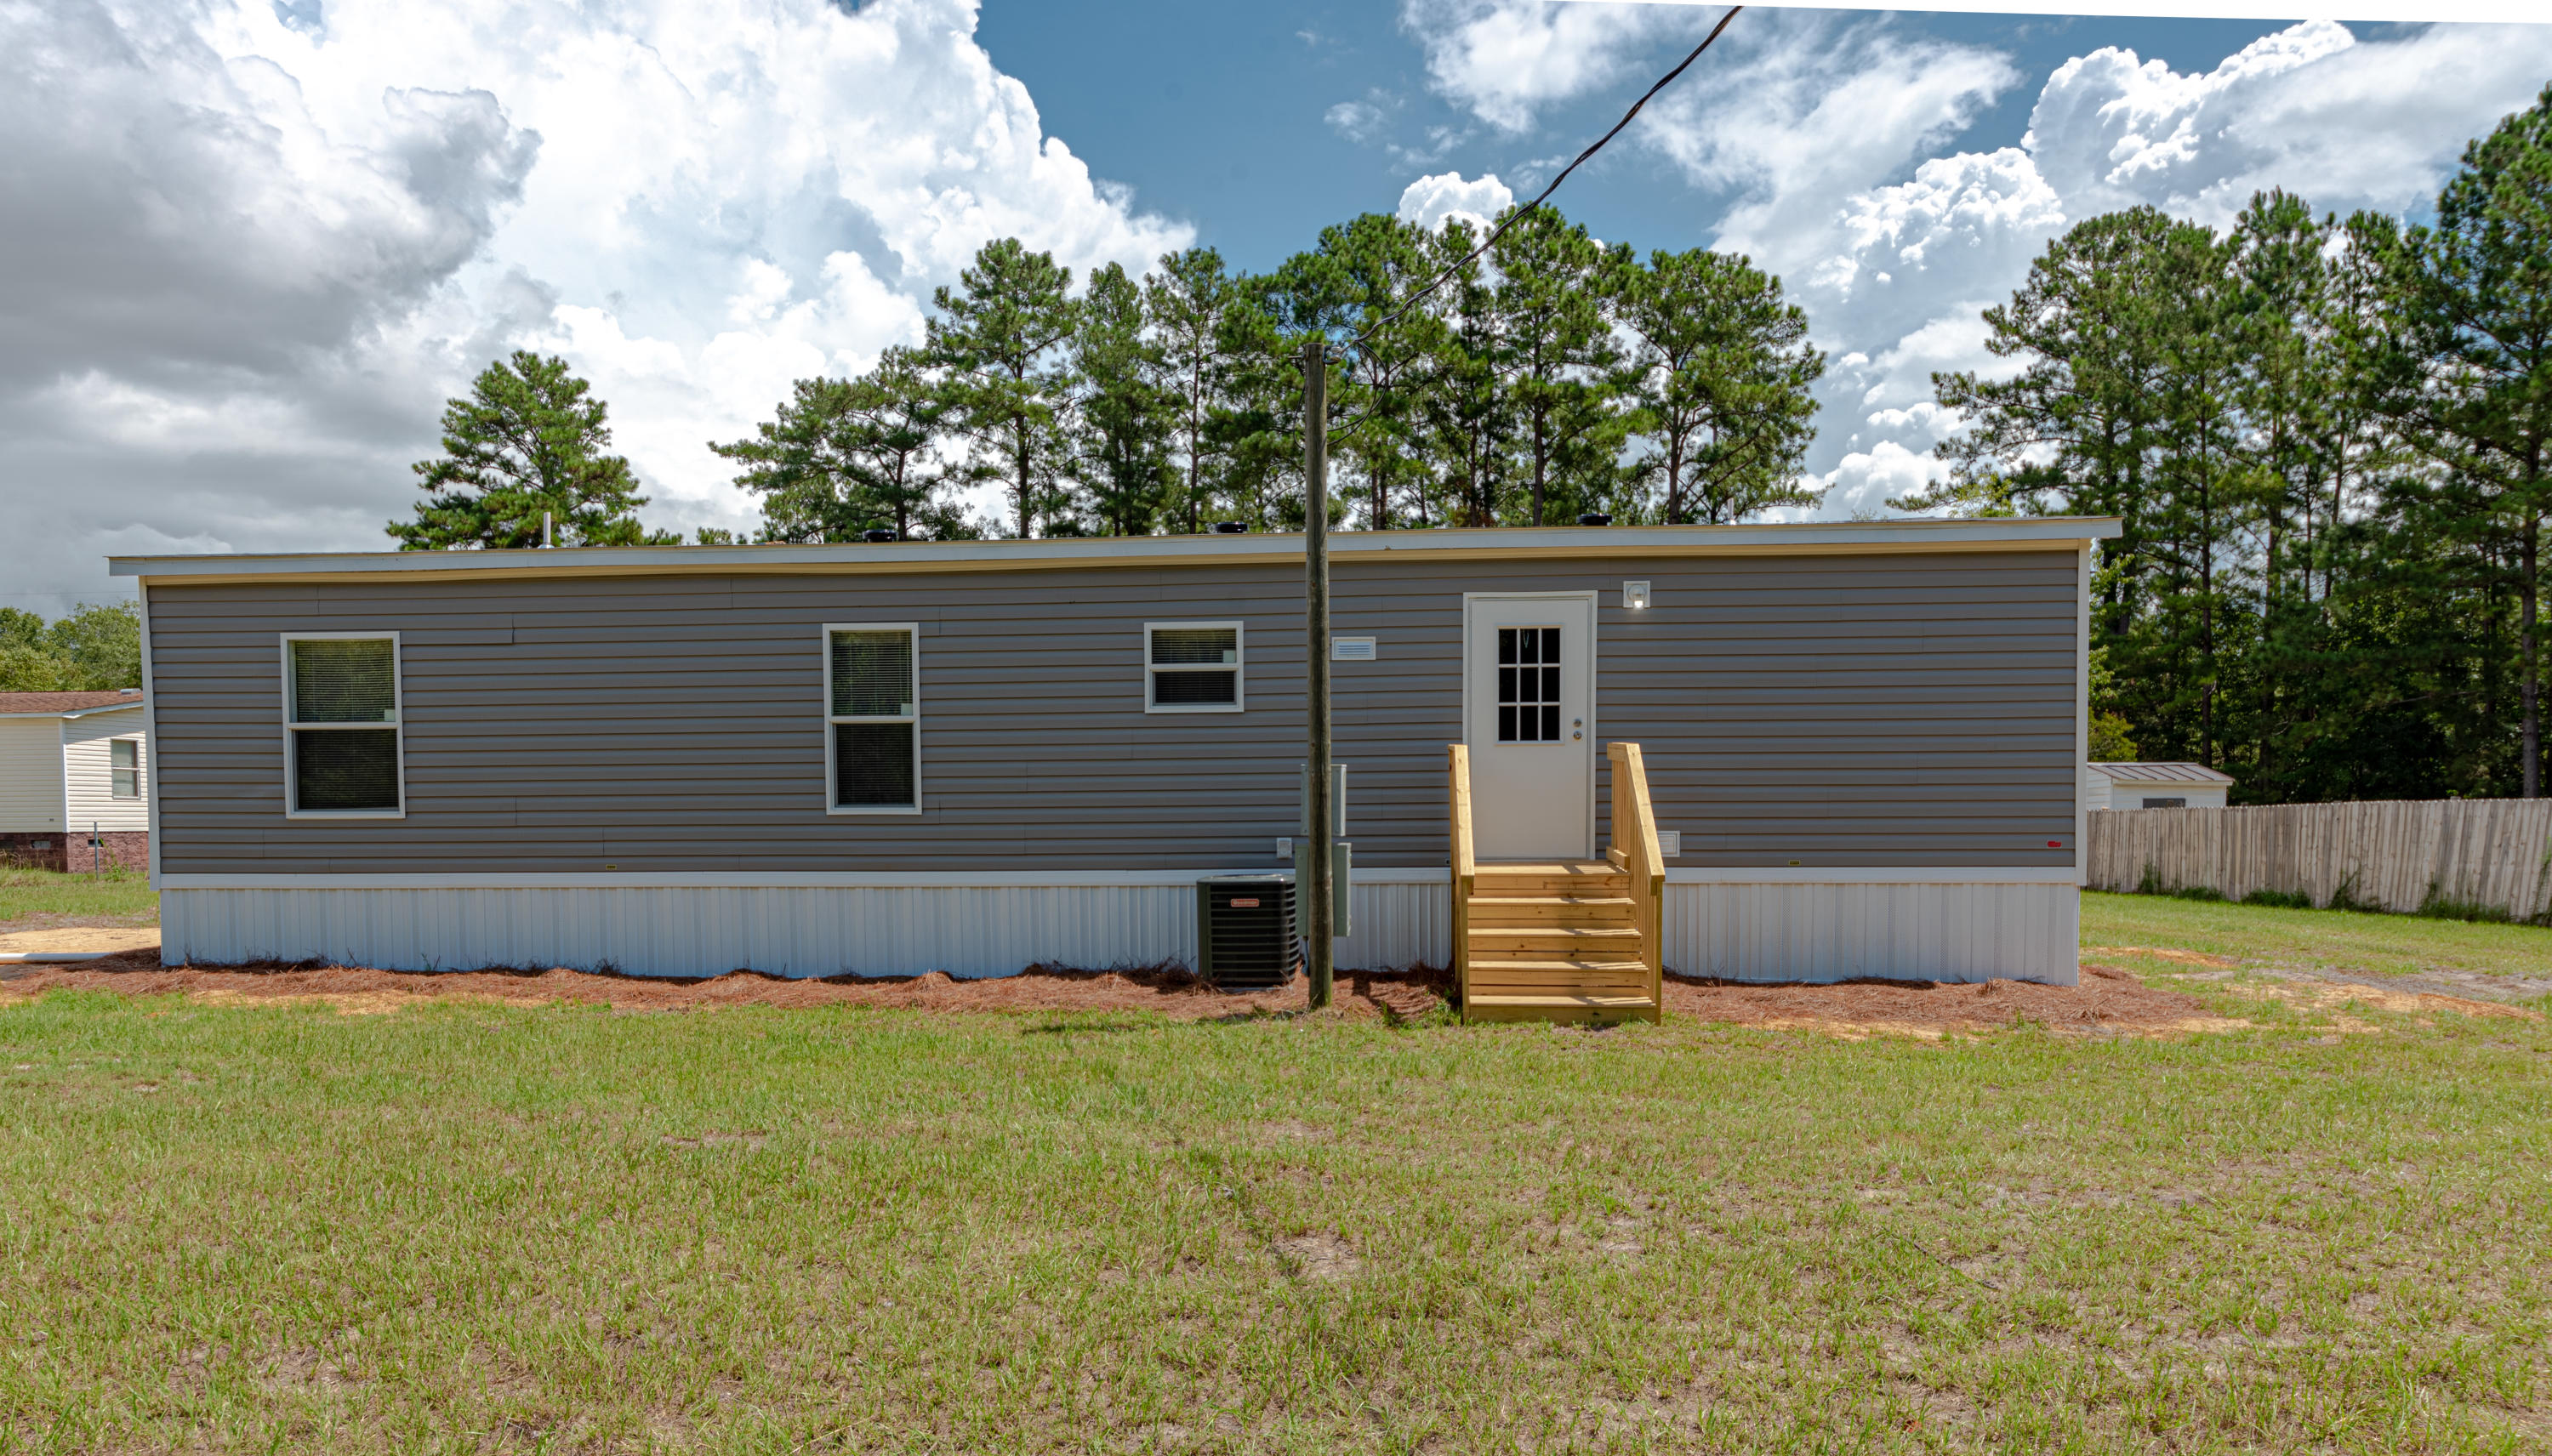 Roosevelt Heights Homes For Sale - 873 Phillips, Walterboro, SC - 4